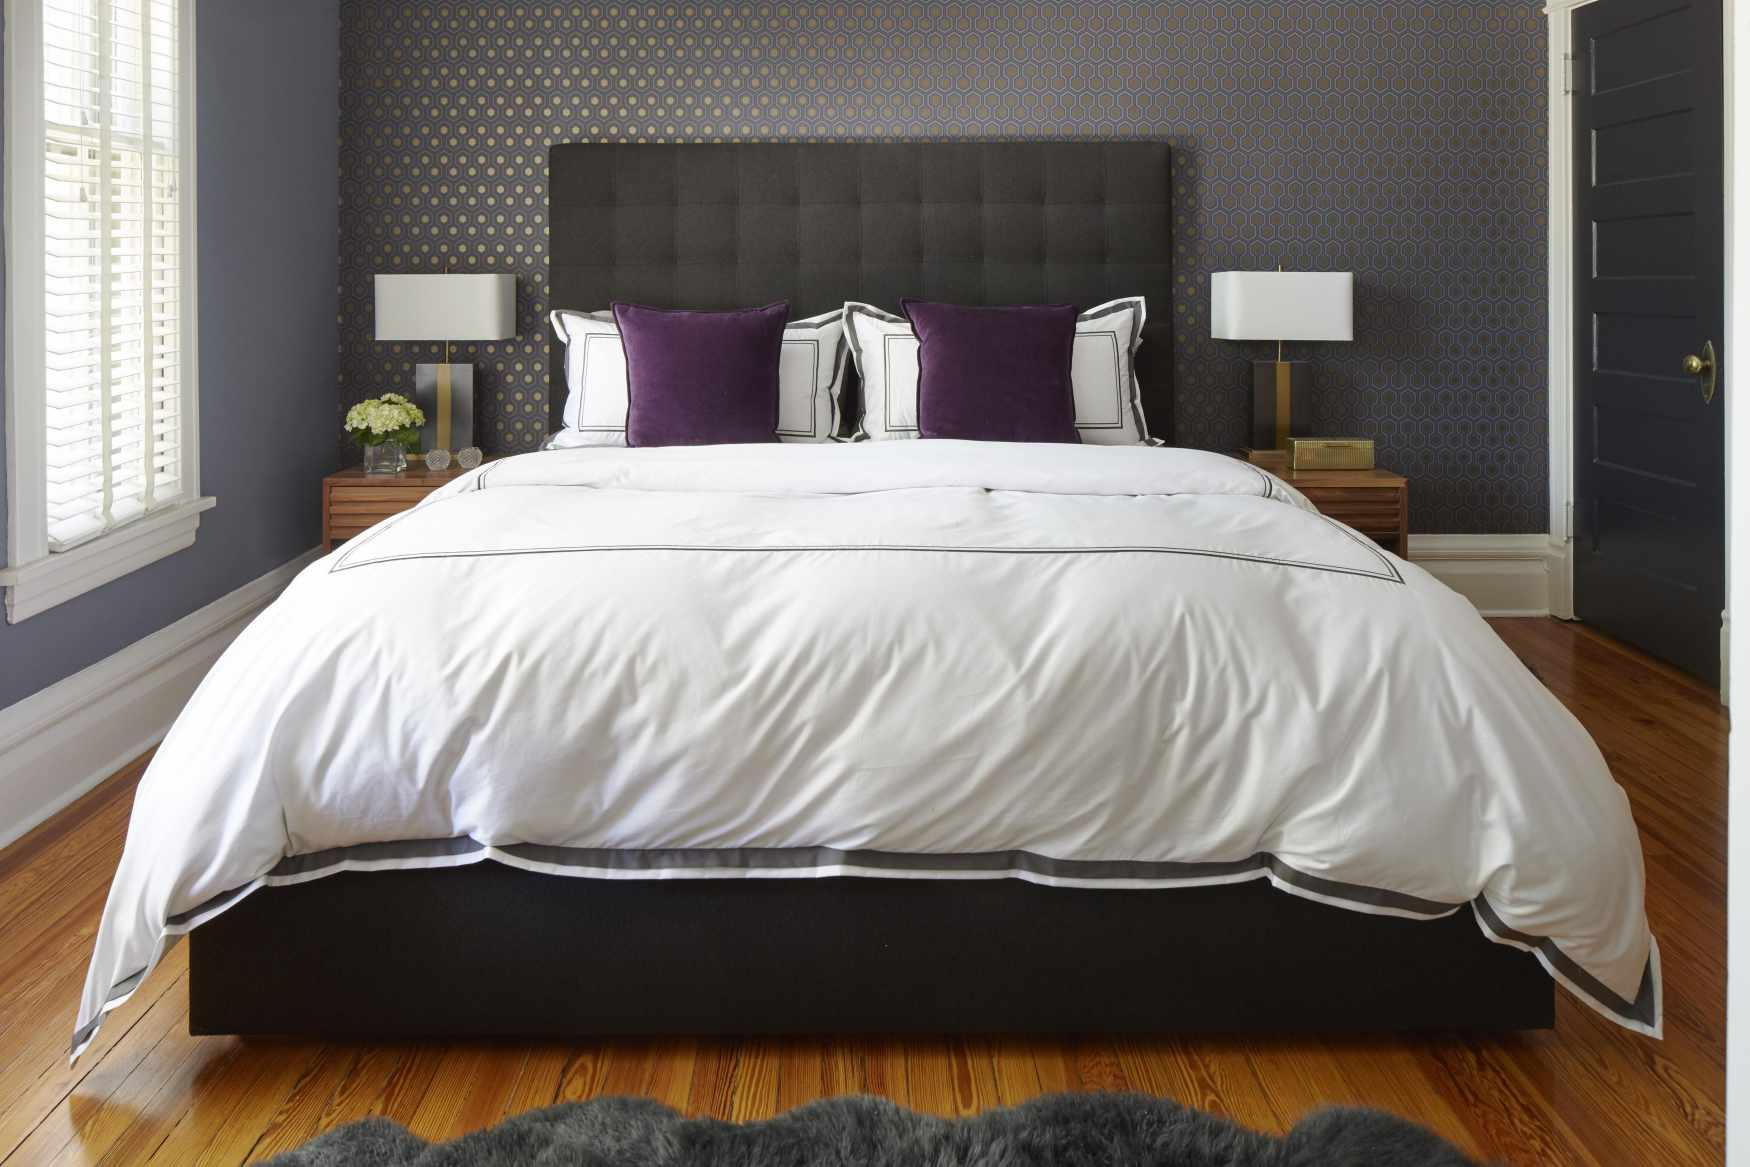 Gray bedroom with purple pillows